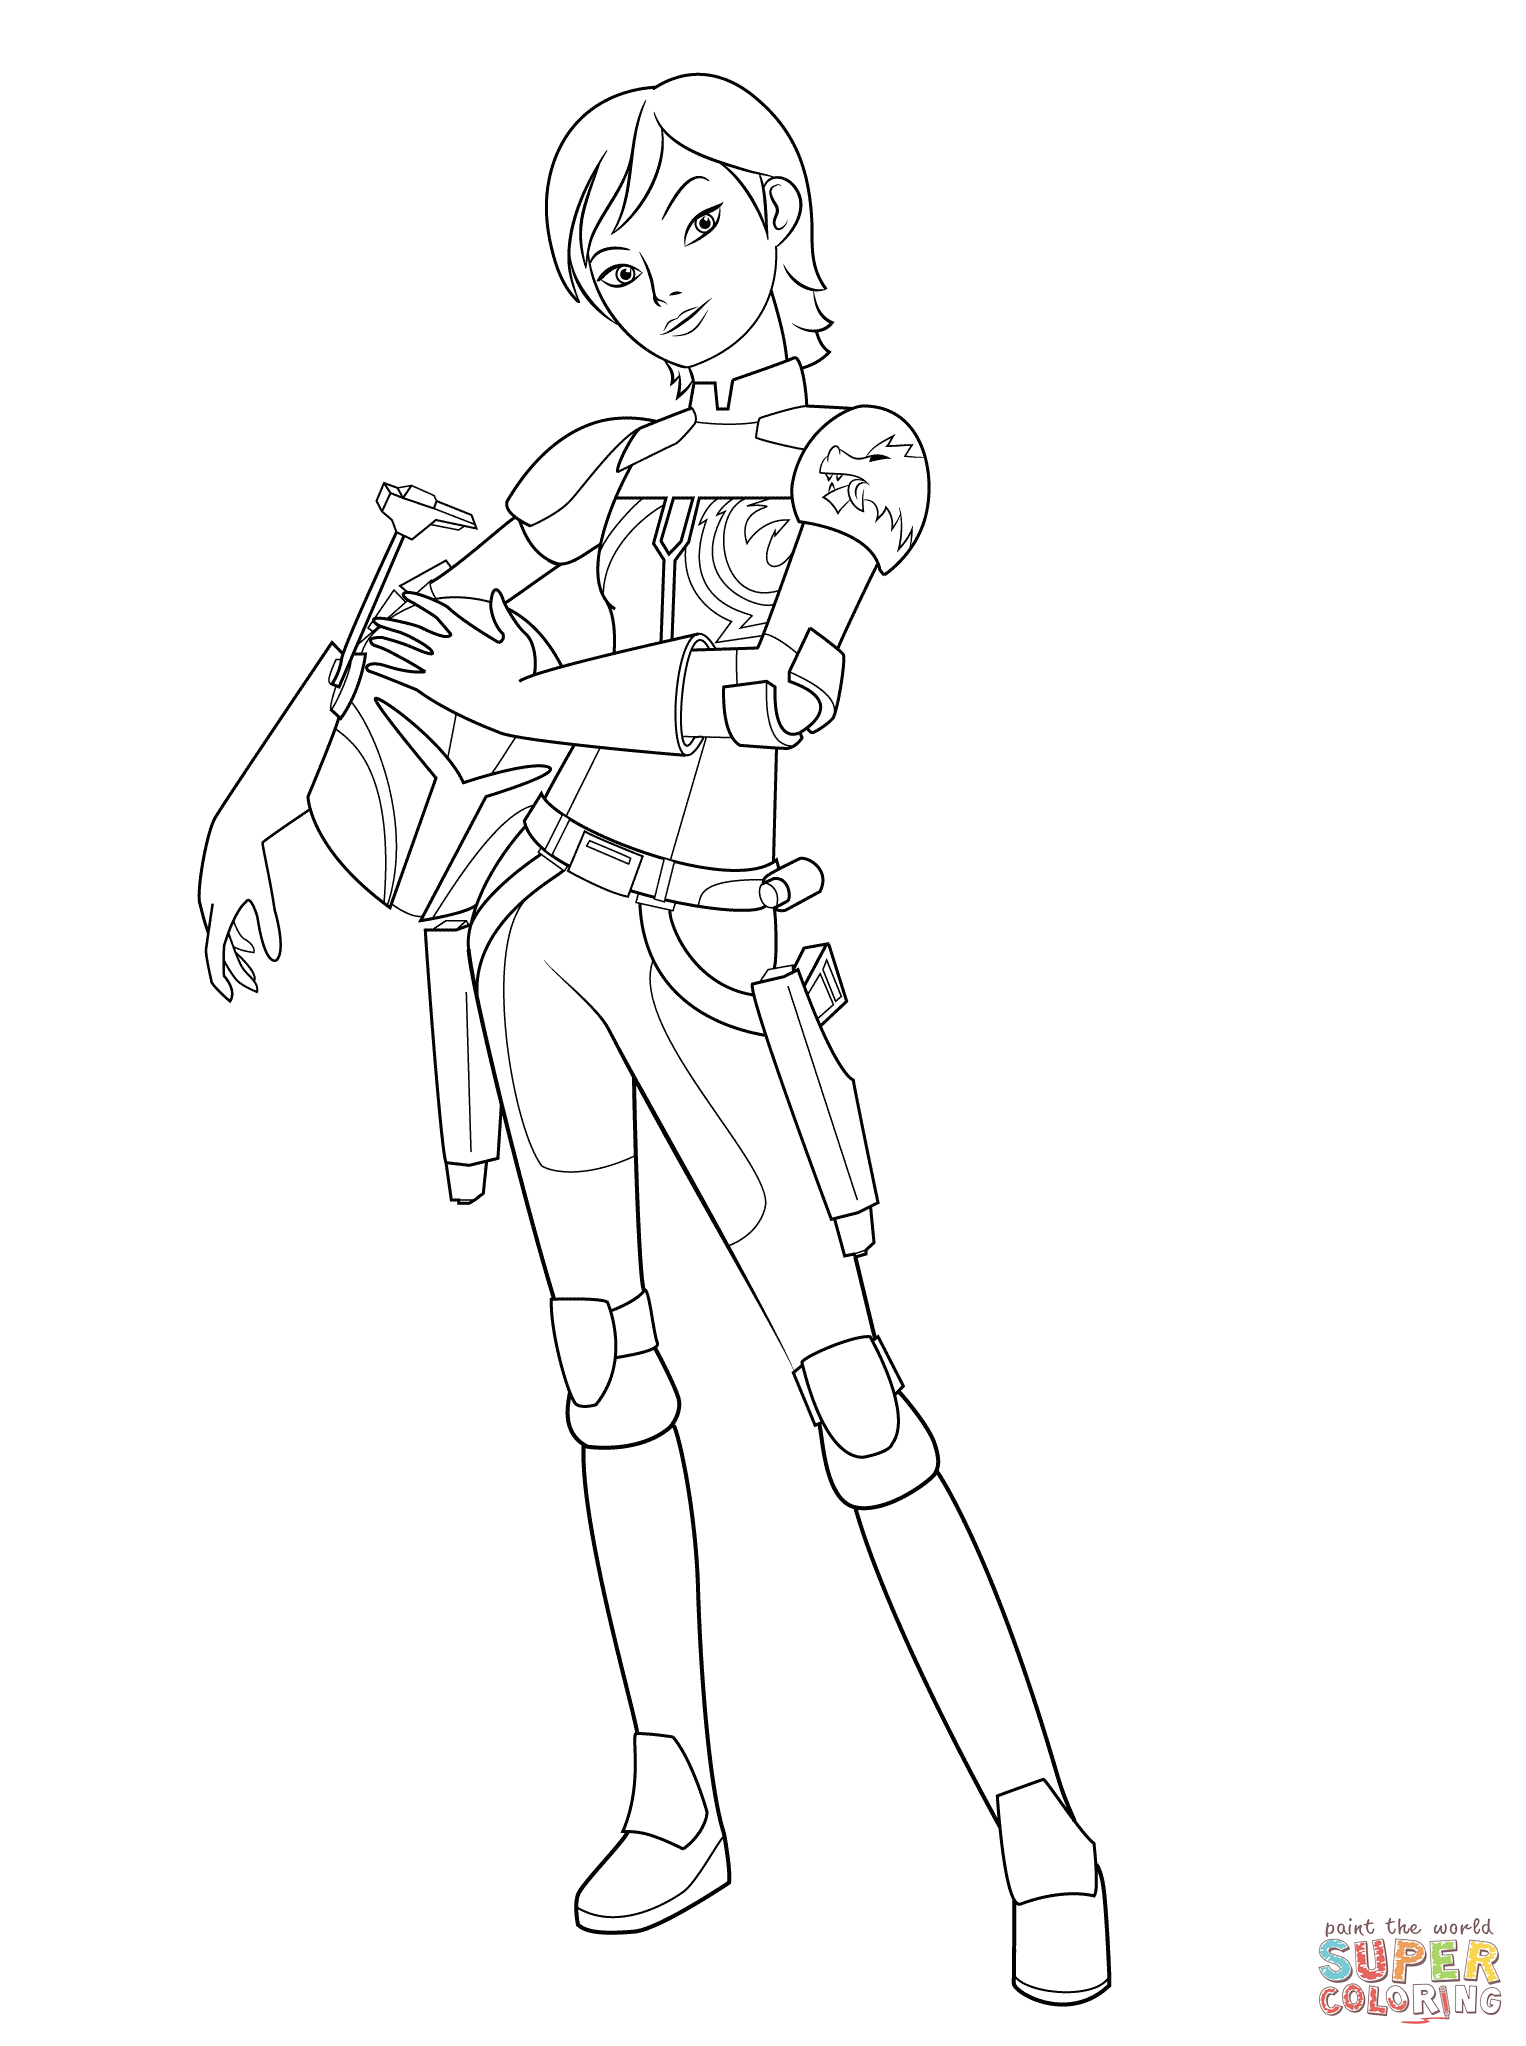 Star Wars Rebel Sabine Wren coloring page from Star Wars Rebels category Select from printable crafts of cartoons nature animals Bible and many